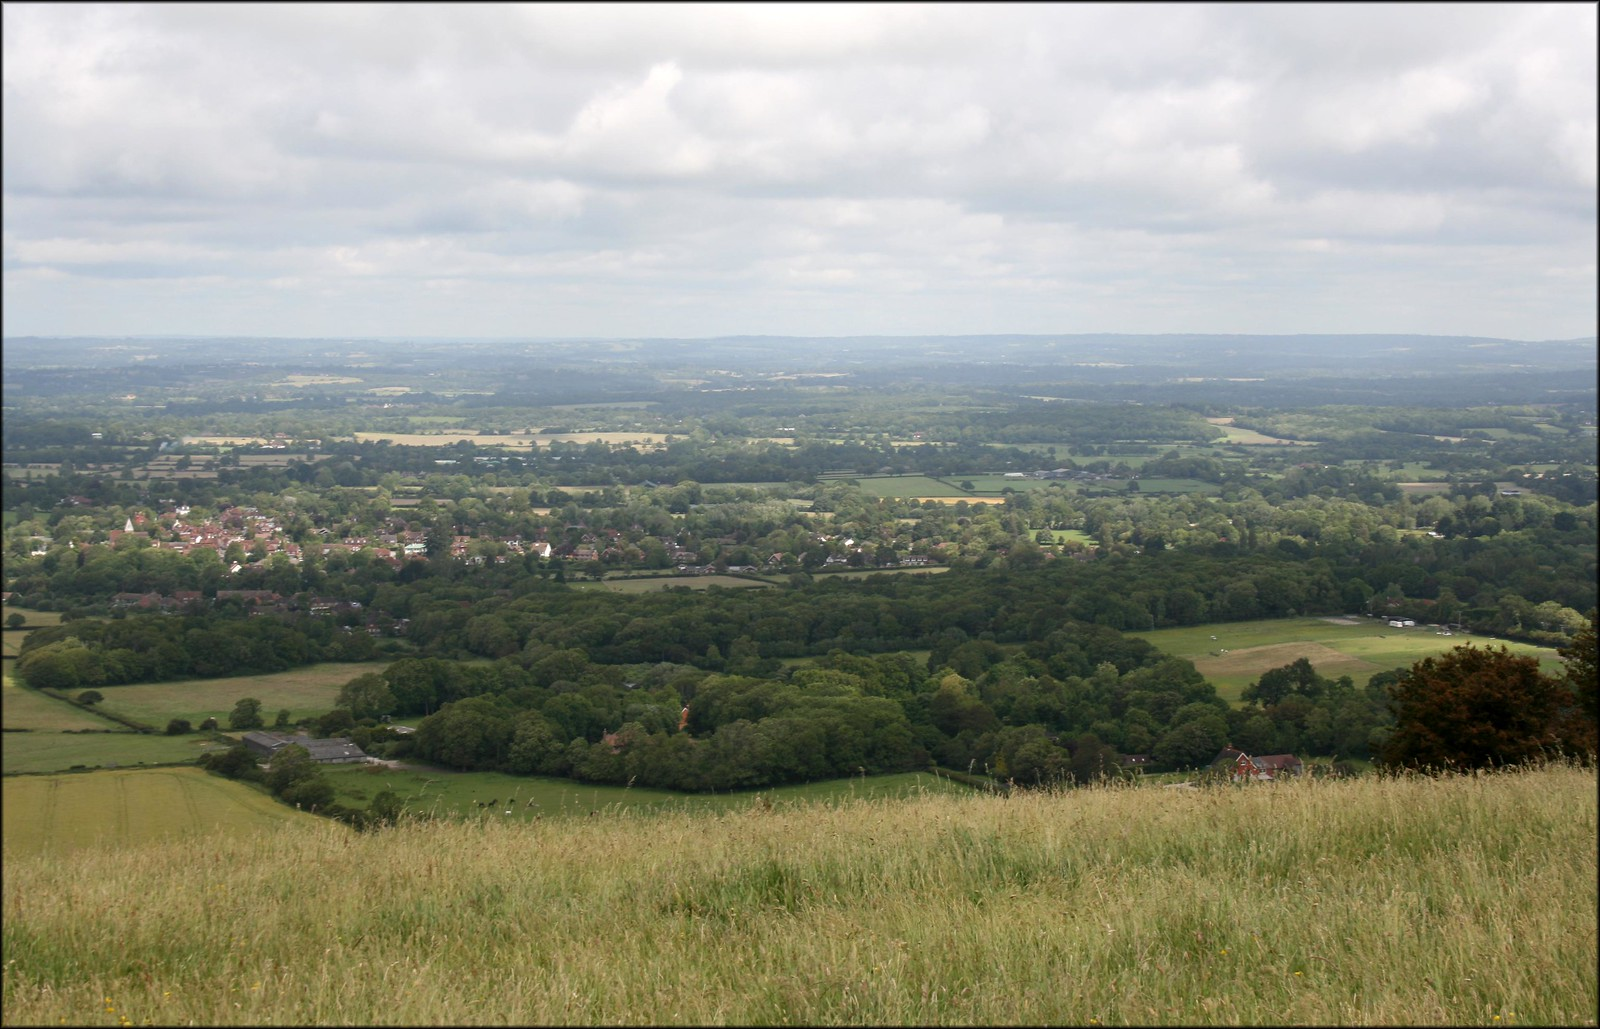 The South Downs near Ditchling Beacon